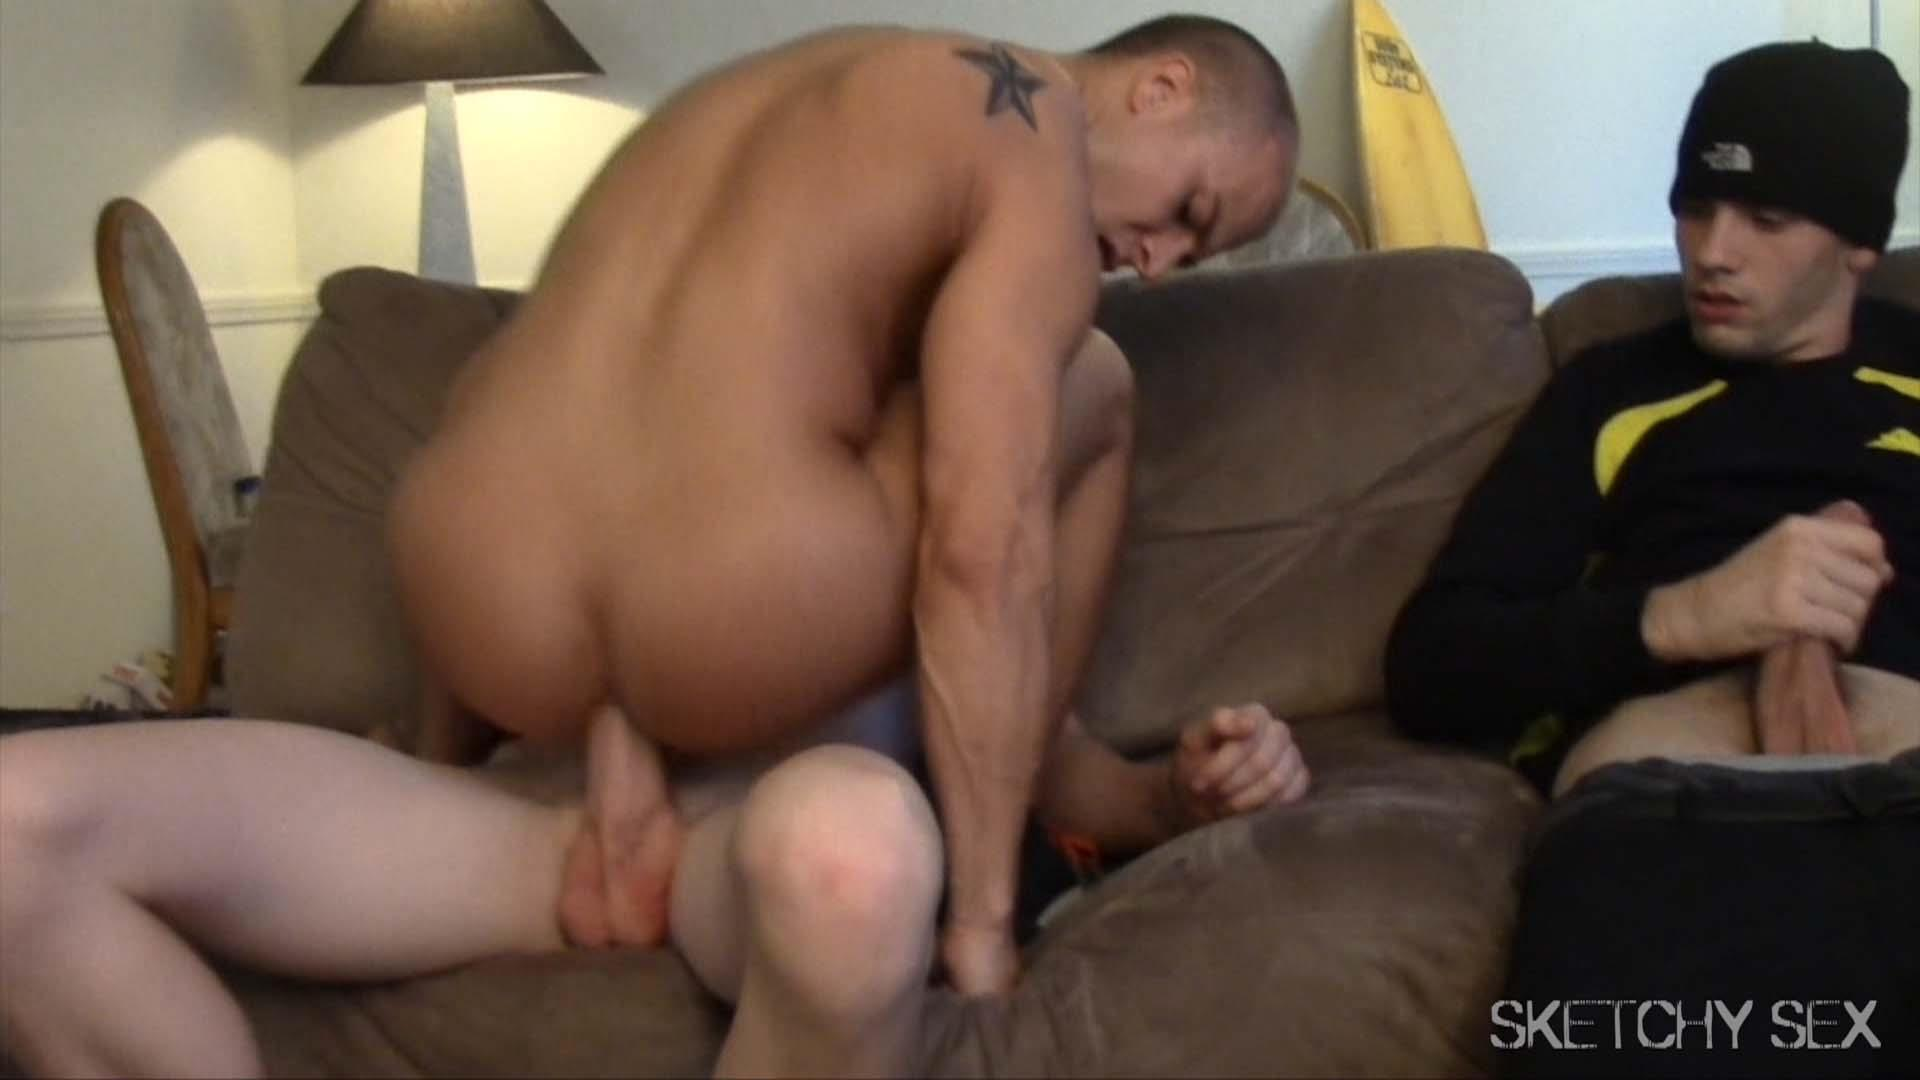 Watch Full Length gay porn videos for free